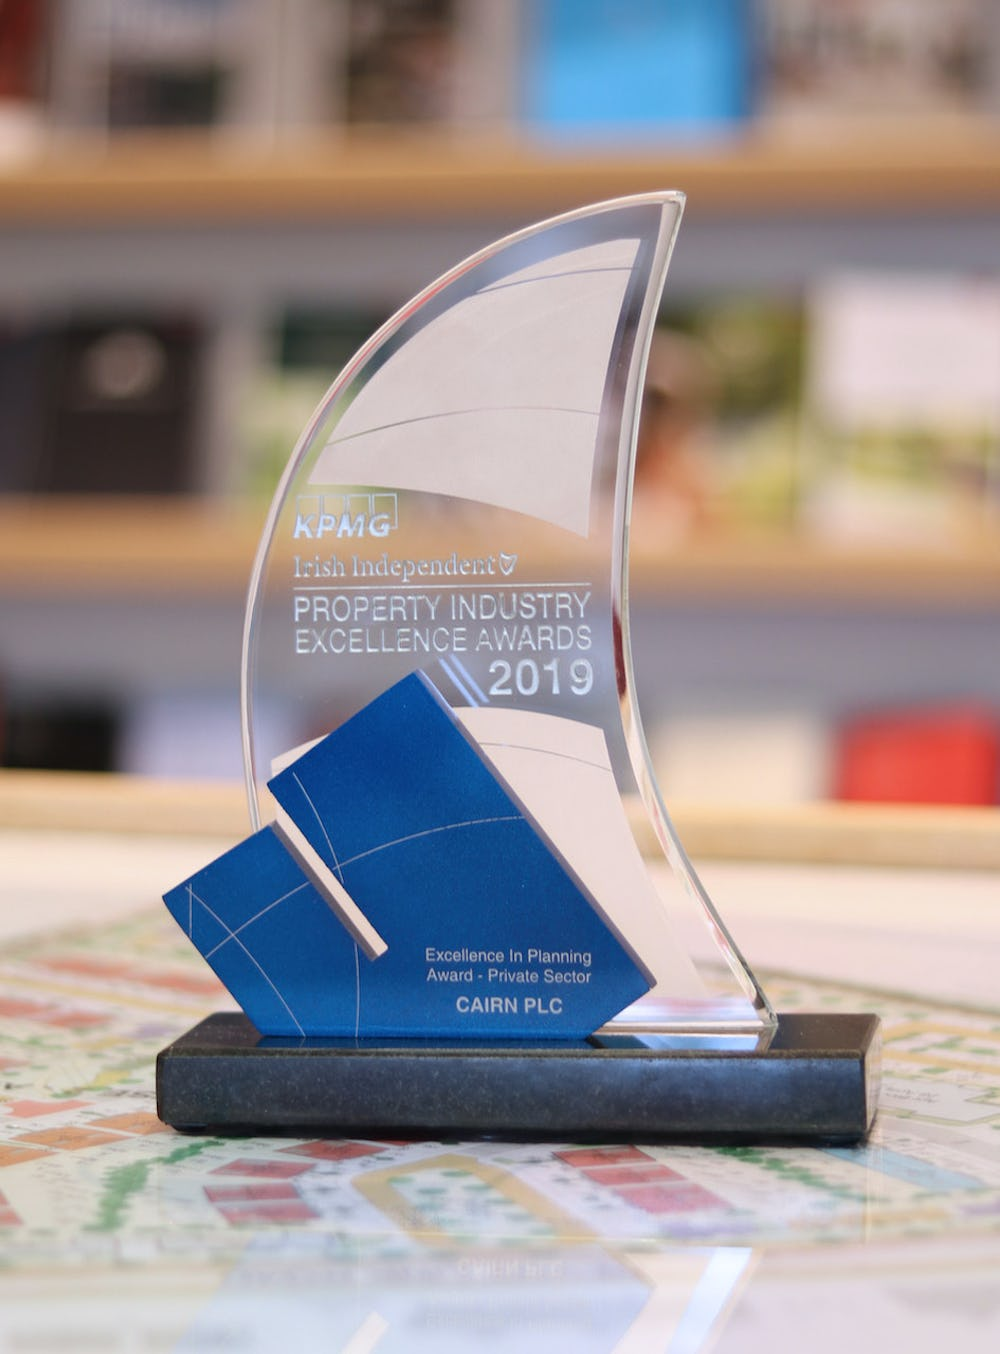 Excellence in Planning Award 2019